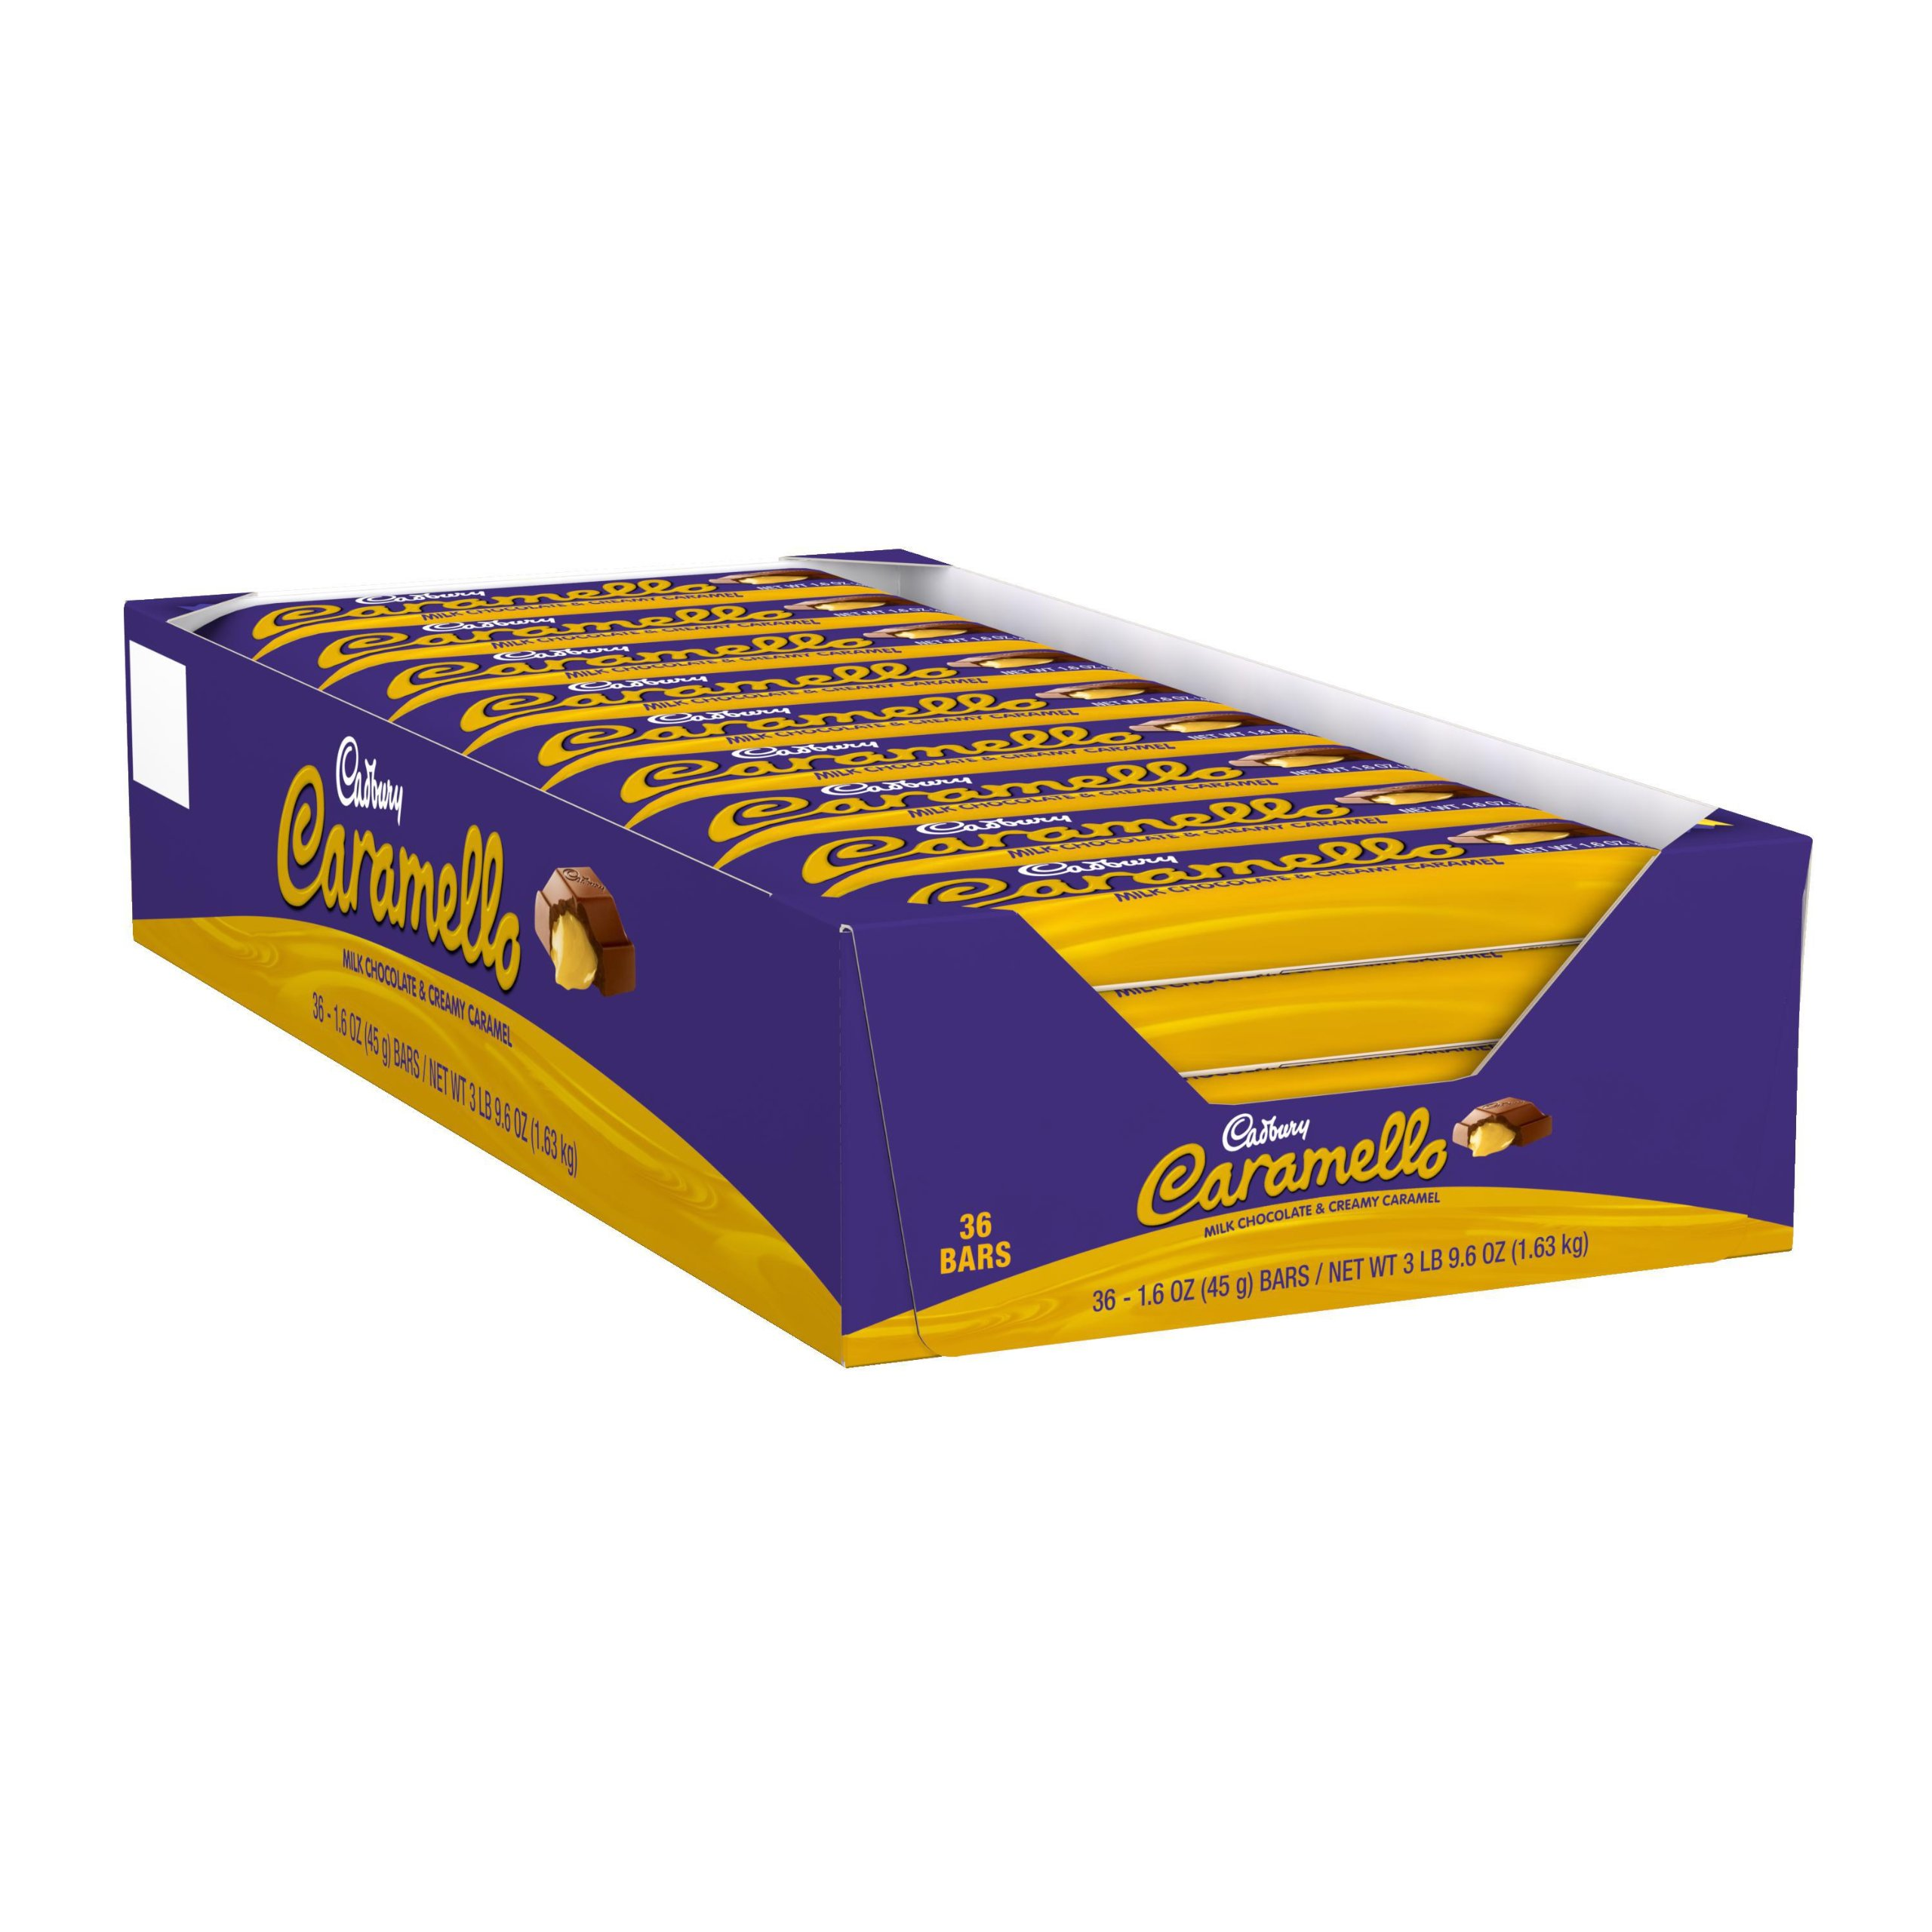 CARAMELLO Chocolate Candy Bar, Milk Chocolate Filled with Caramel, 1.6 Ounce Package (Pack of 36)